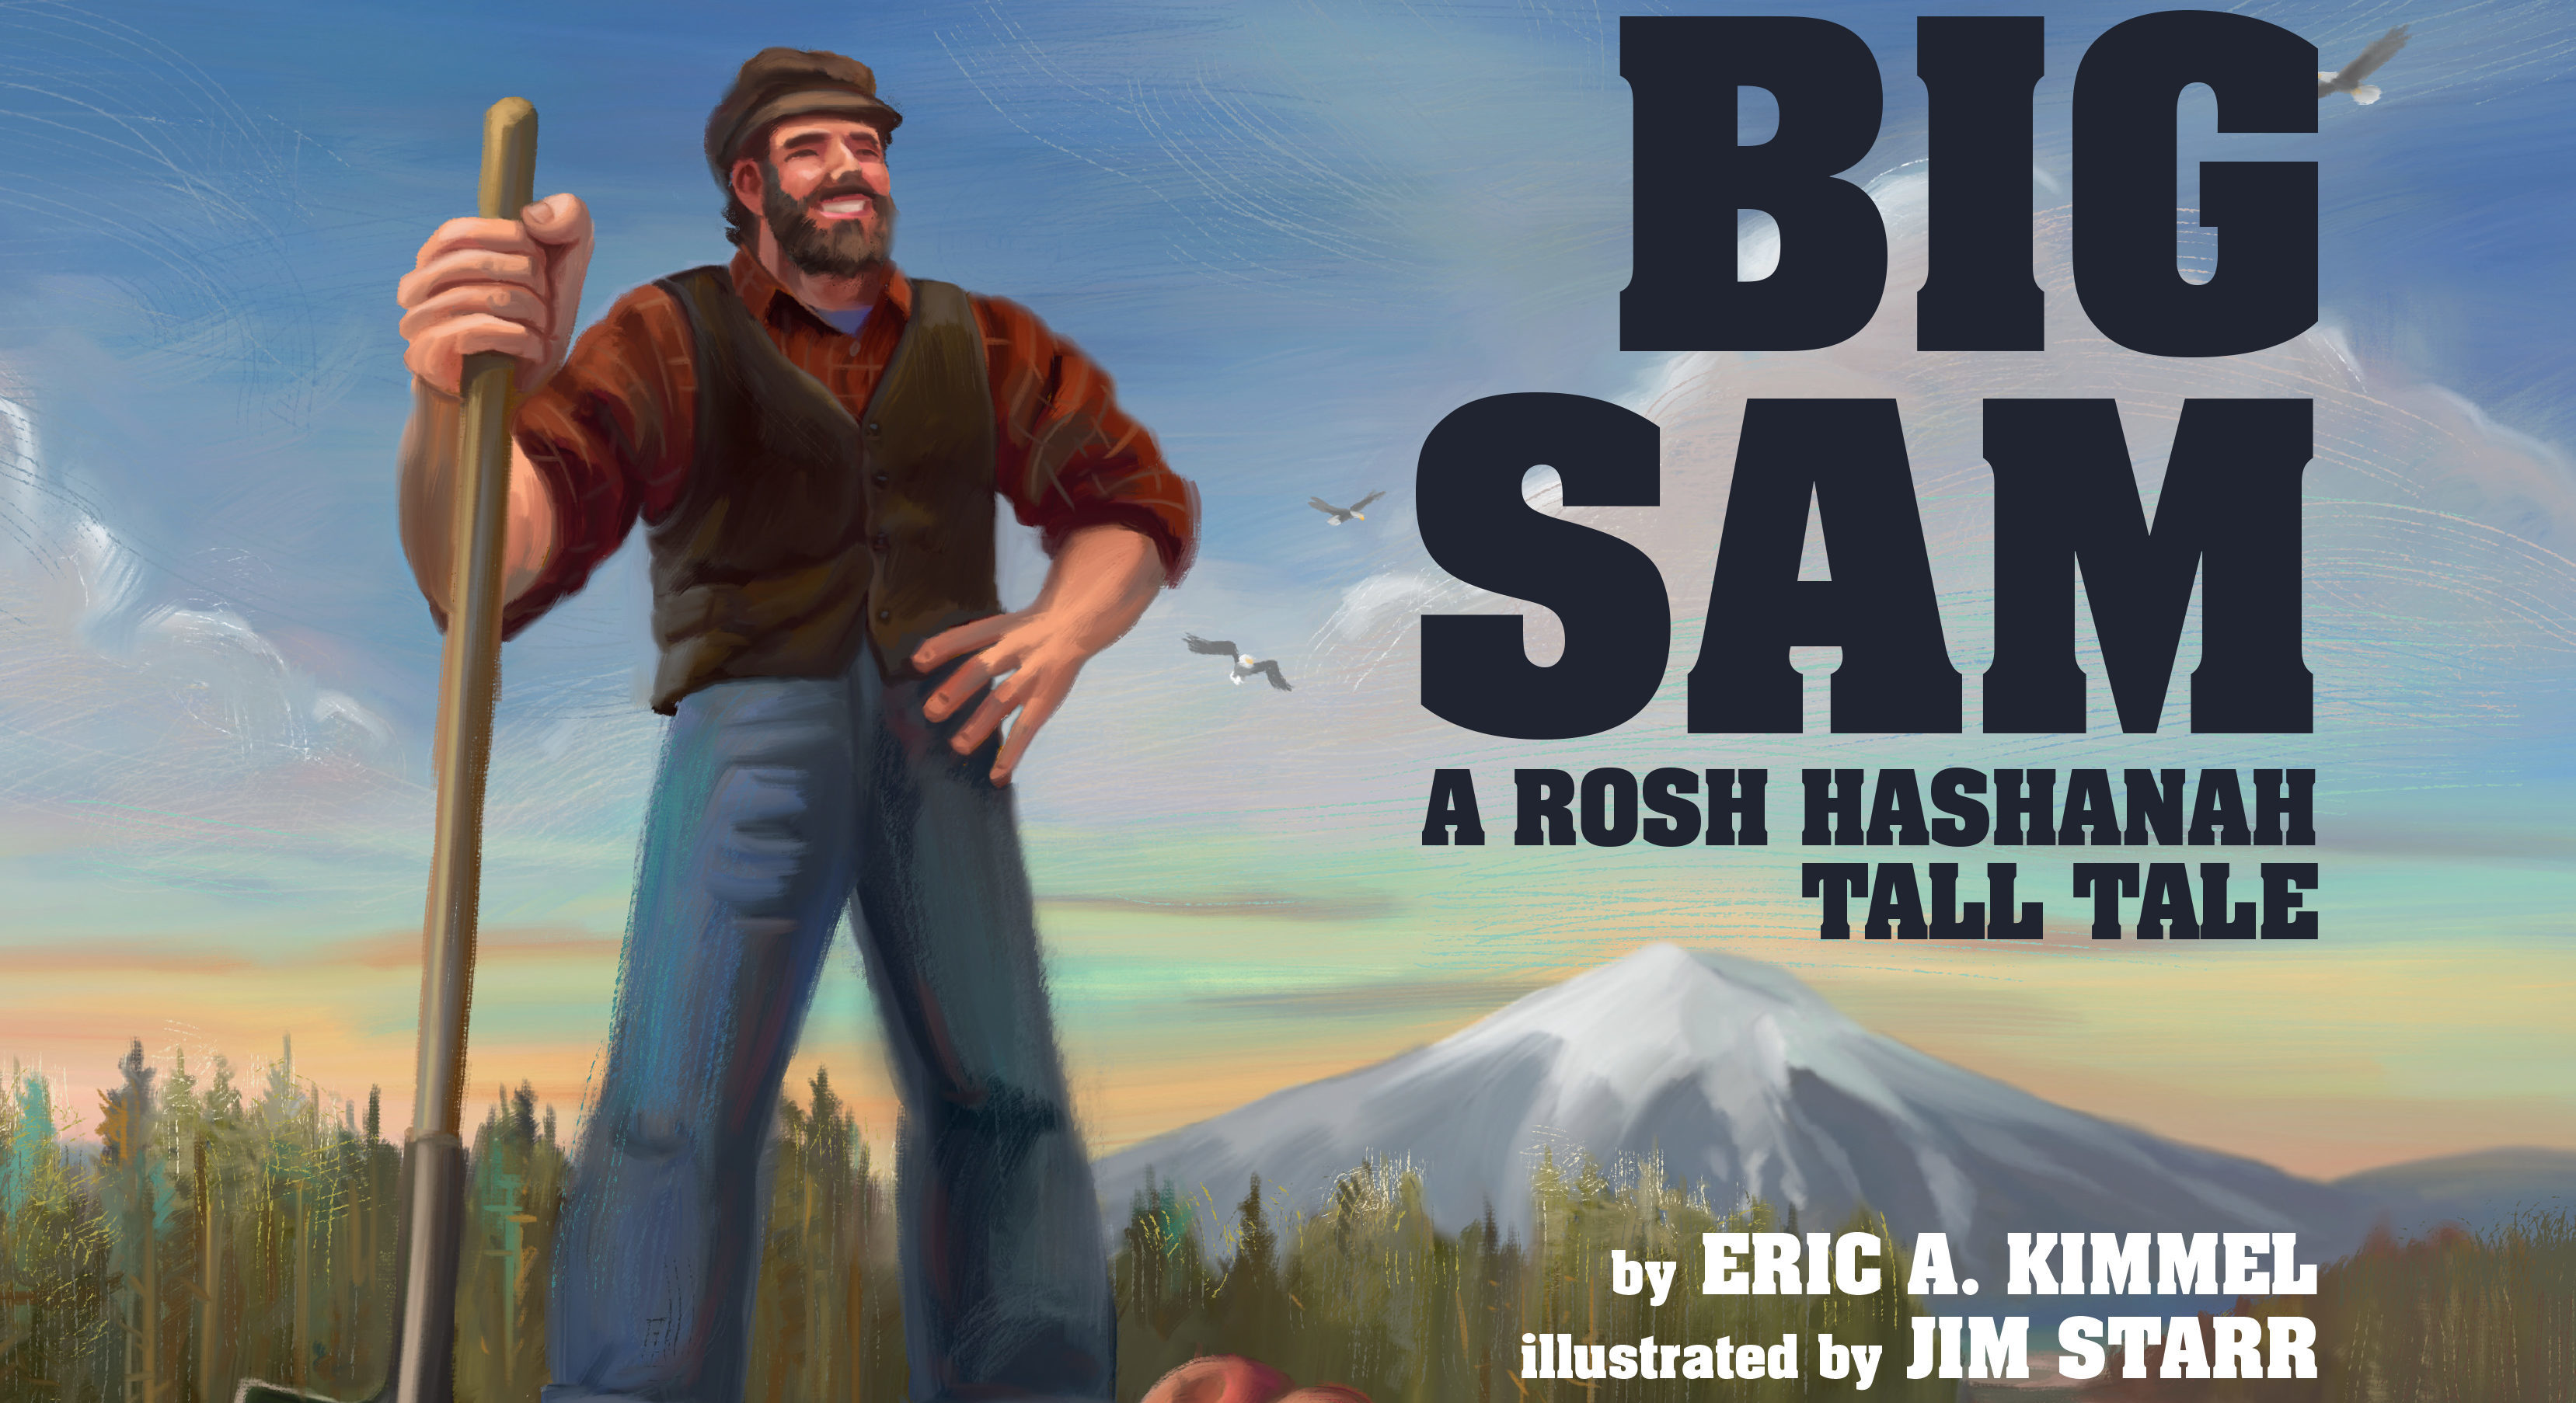 """From the cover of """"Big Sam: A Rosh Hashanah Tall Tale"""" by Eric A. Kimmel and illustrated by Jim Starr"""